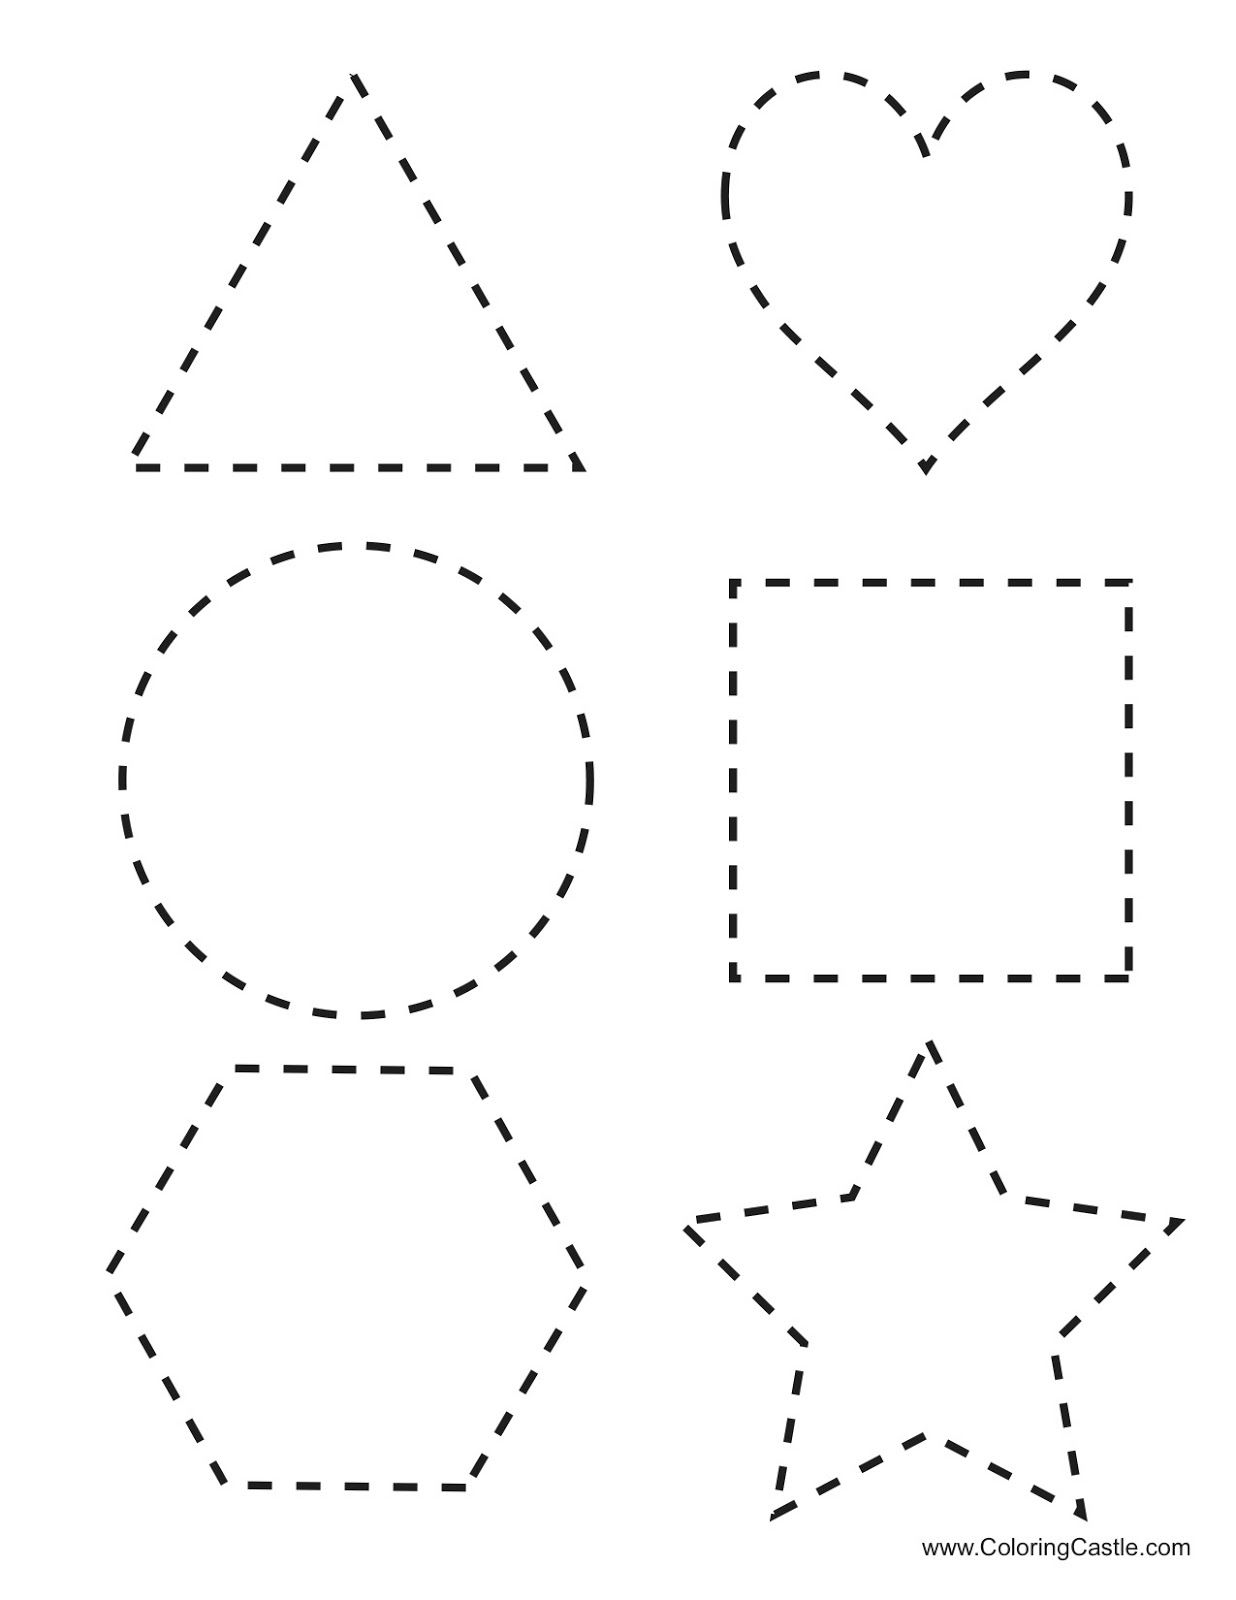 Tracing Shapes Printables | Tracing Shapes Download Here Six